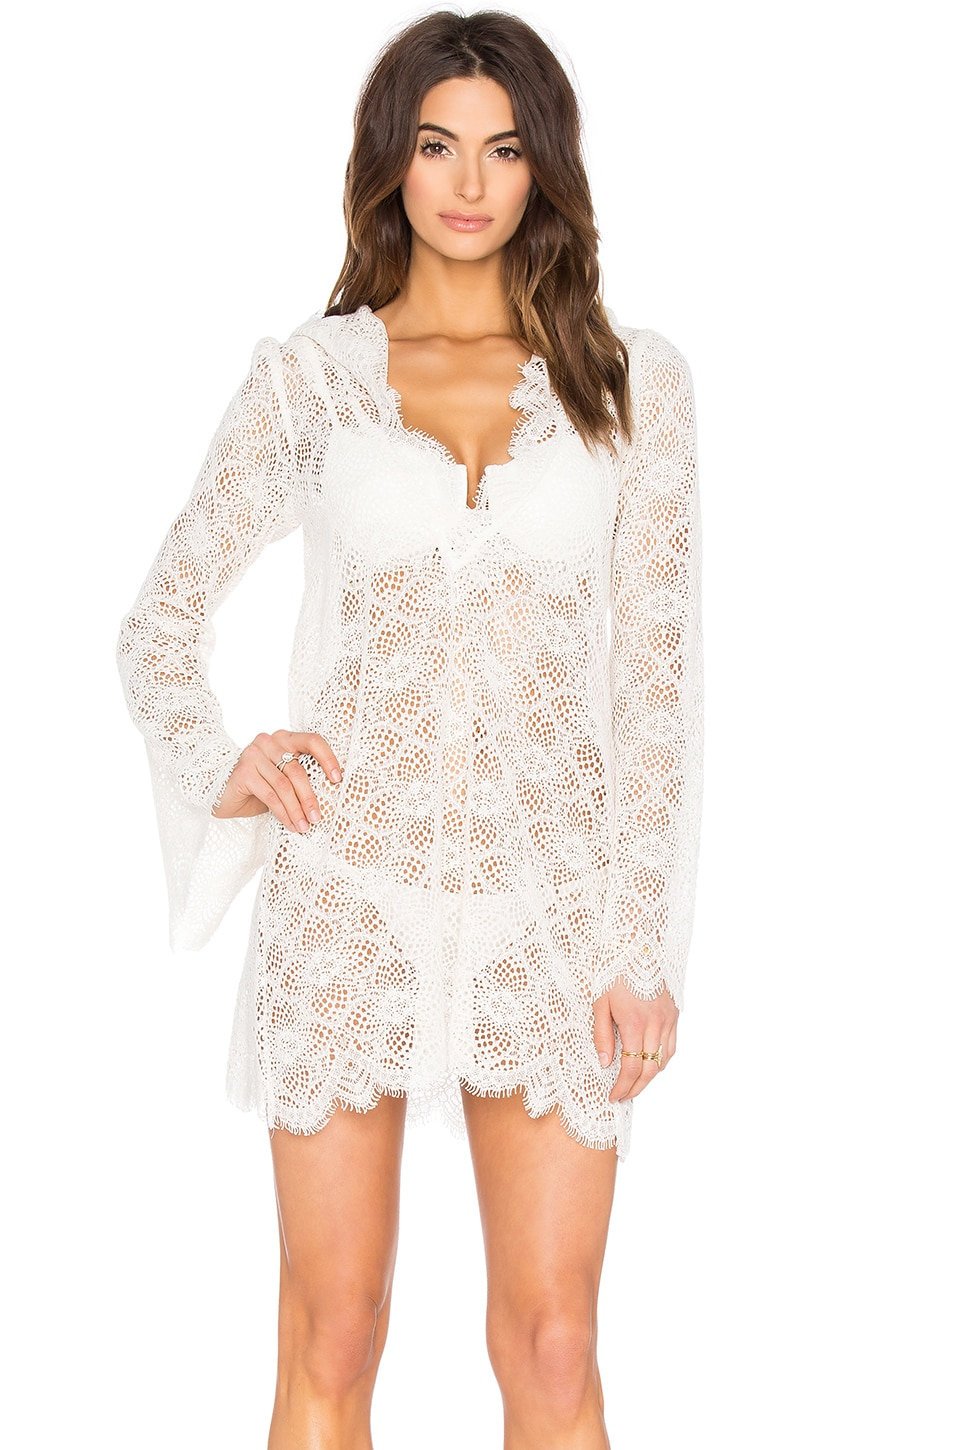 For Love & Lemons Cannes Cover Up in White